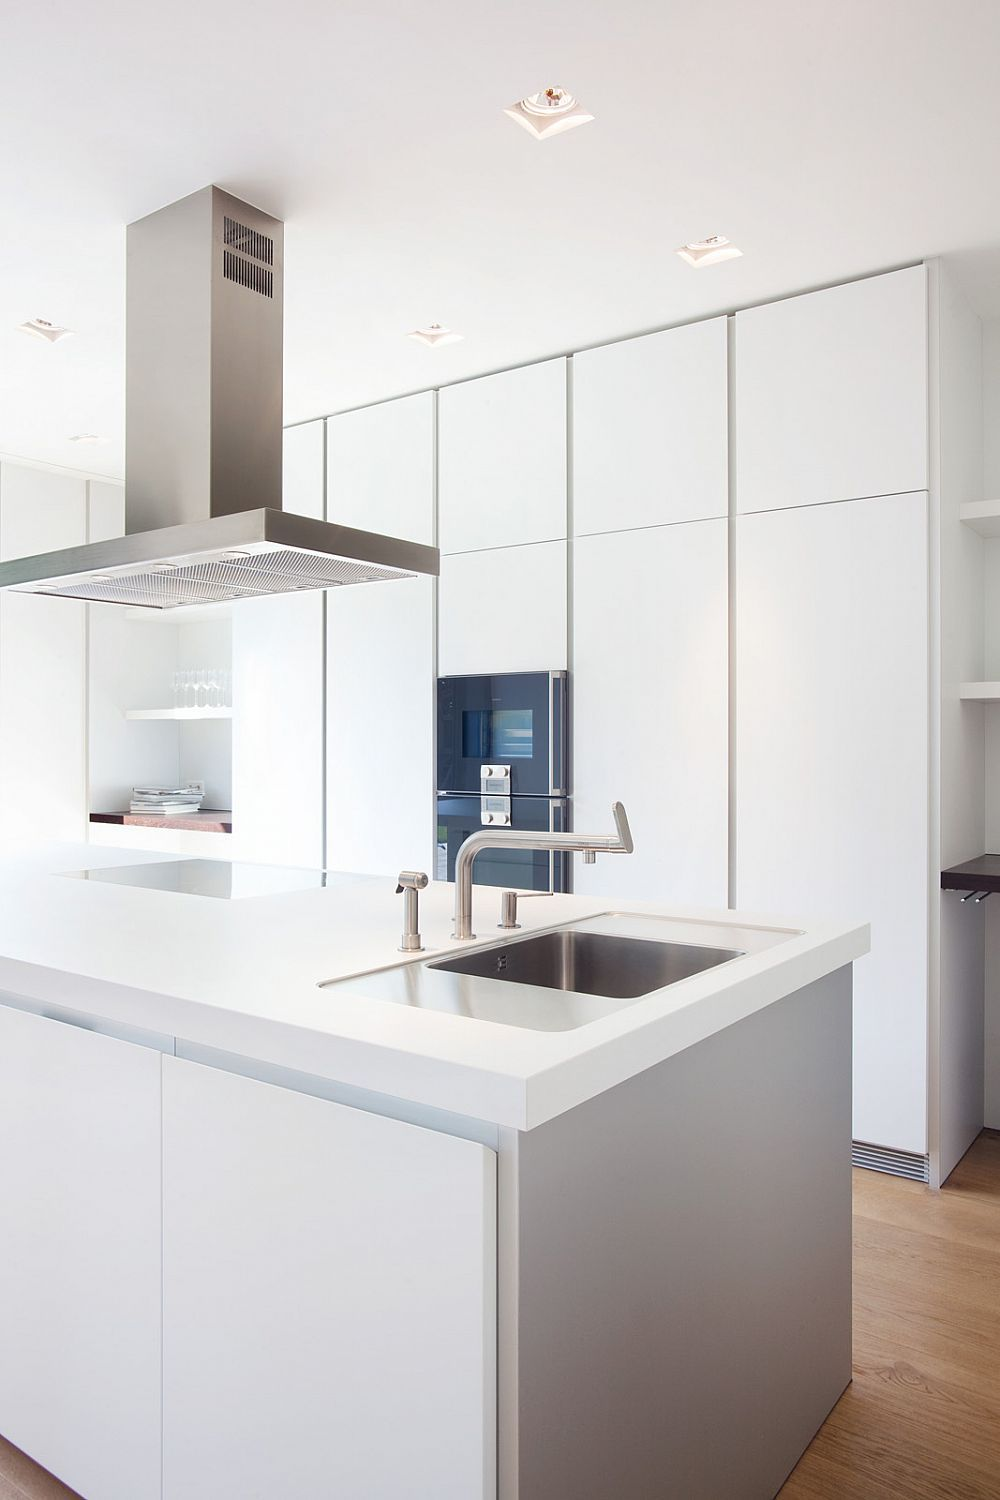 The Bulthaup B1 Kitchen Follows This Principle With Its Purist Ergonomic Design People Can Focus On The Important Mit Bildern Kuchendesign Bulthaup Kuchen Kuchen Design